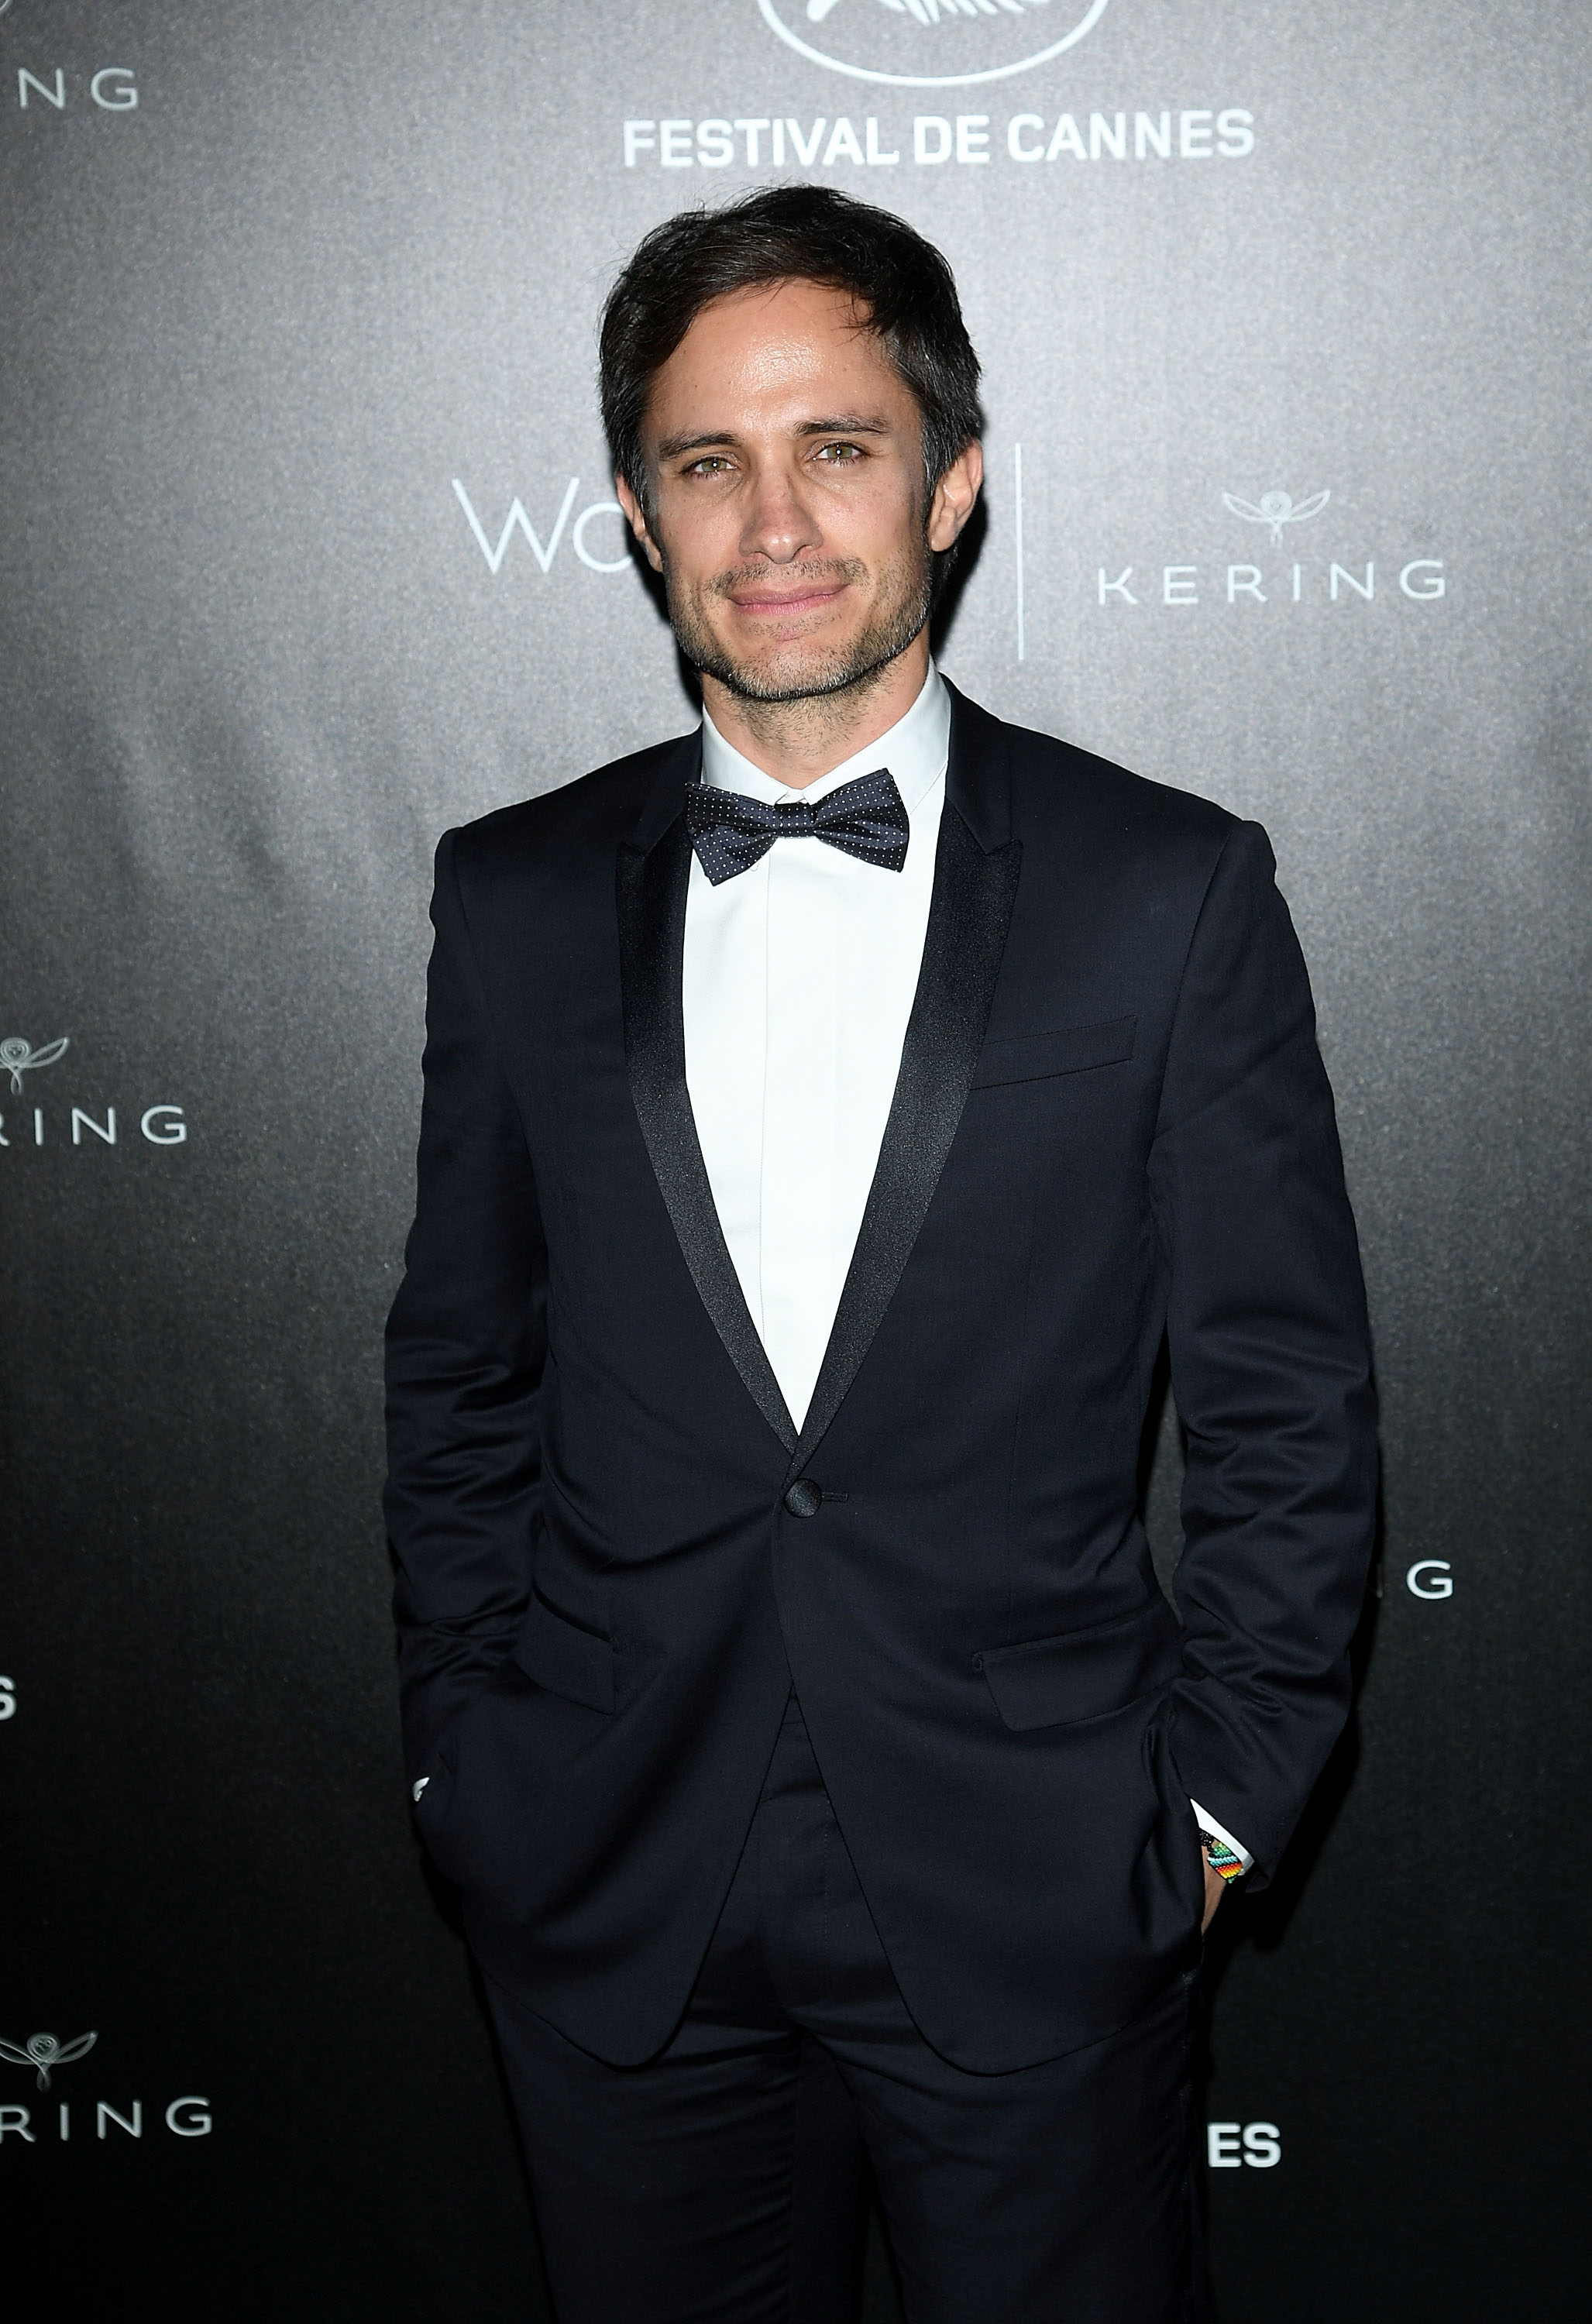 CANNES, FRANCE - MAY 15: Gael Garcia Bernal attends the Kering And Cannes Film Festival Official Dinner at Place de la Castre on May 15, 2016 in Cannes, France. (Photo by Venturelli/Getty Images for Kering)